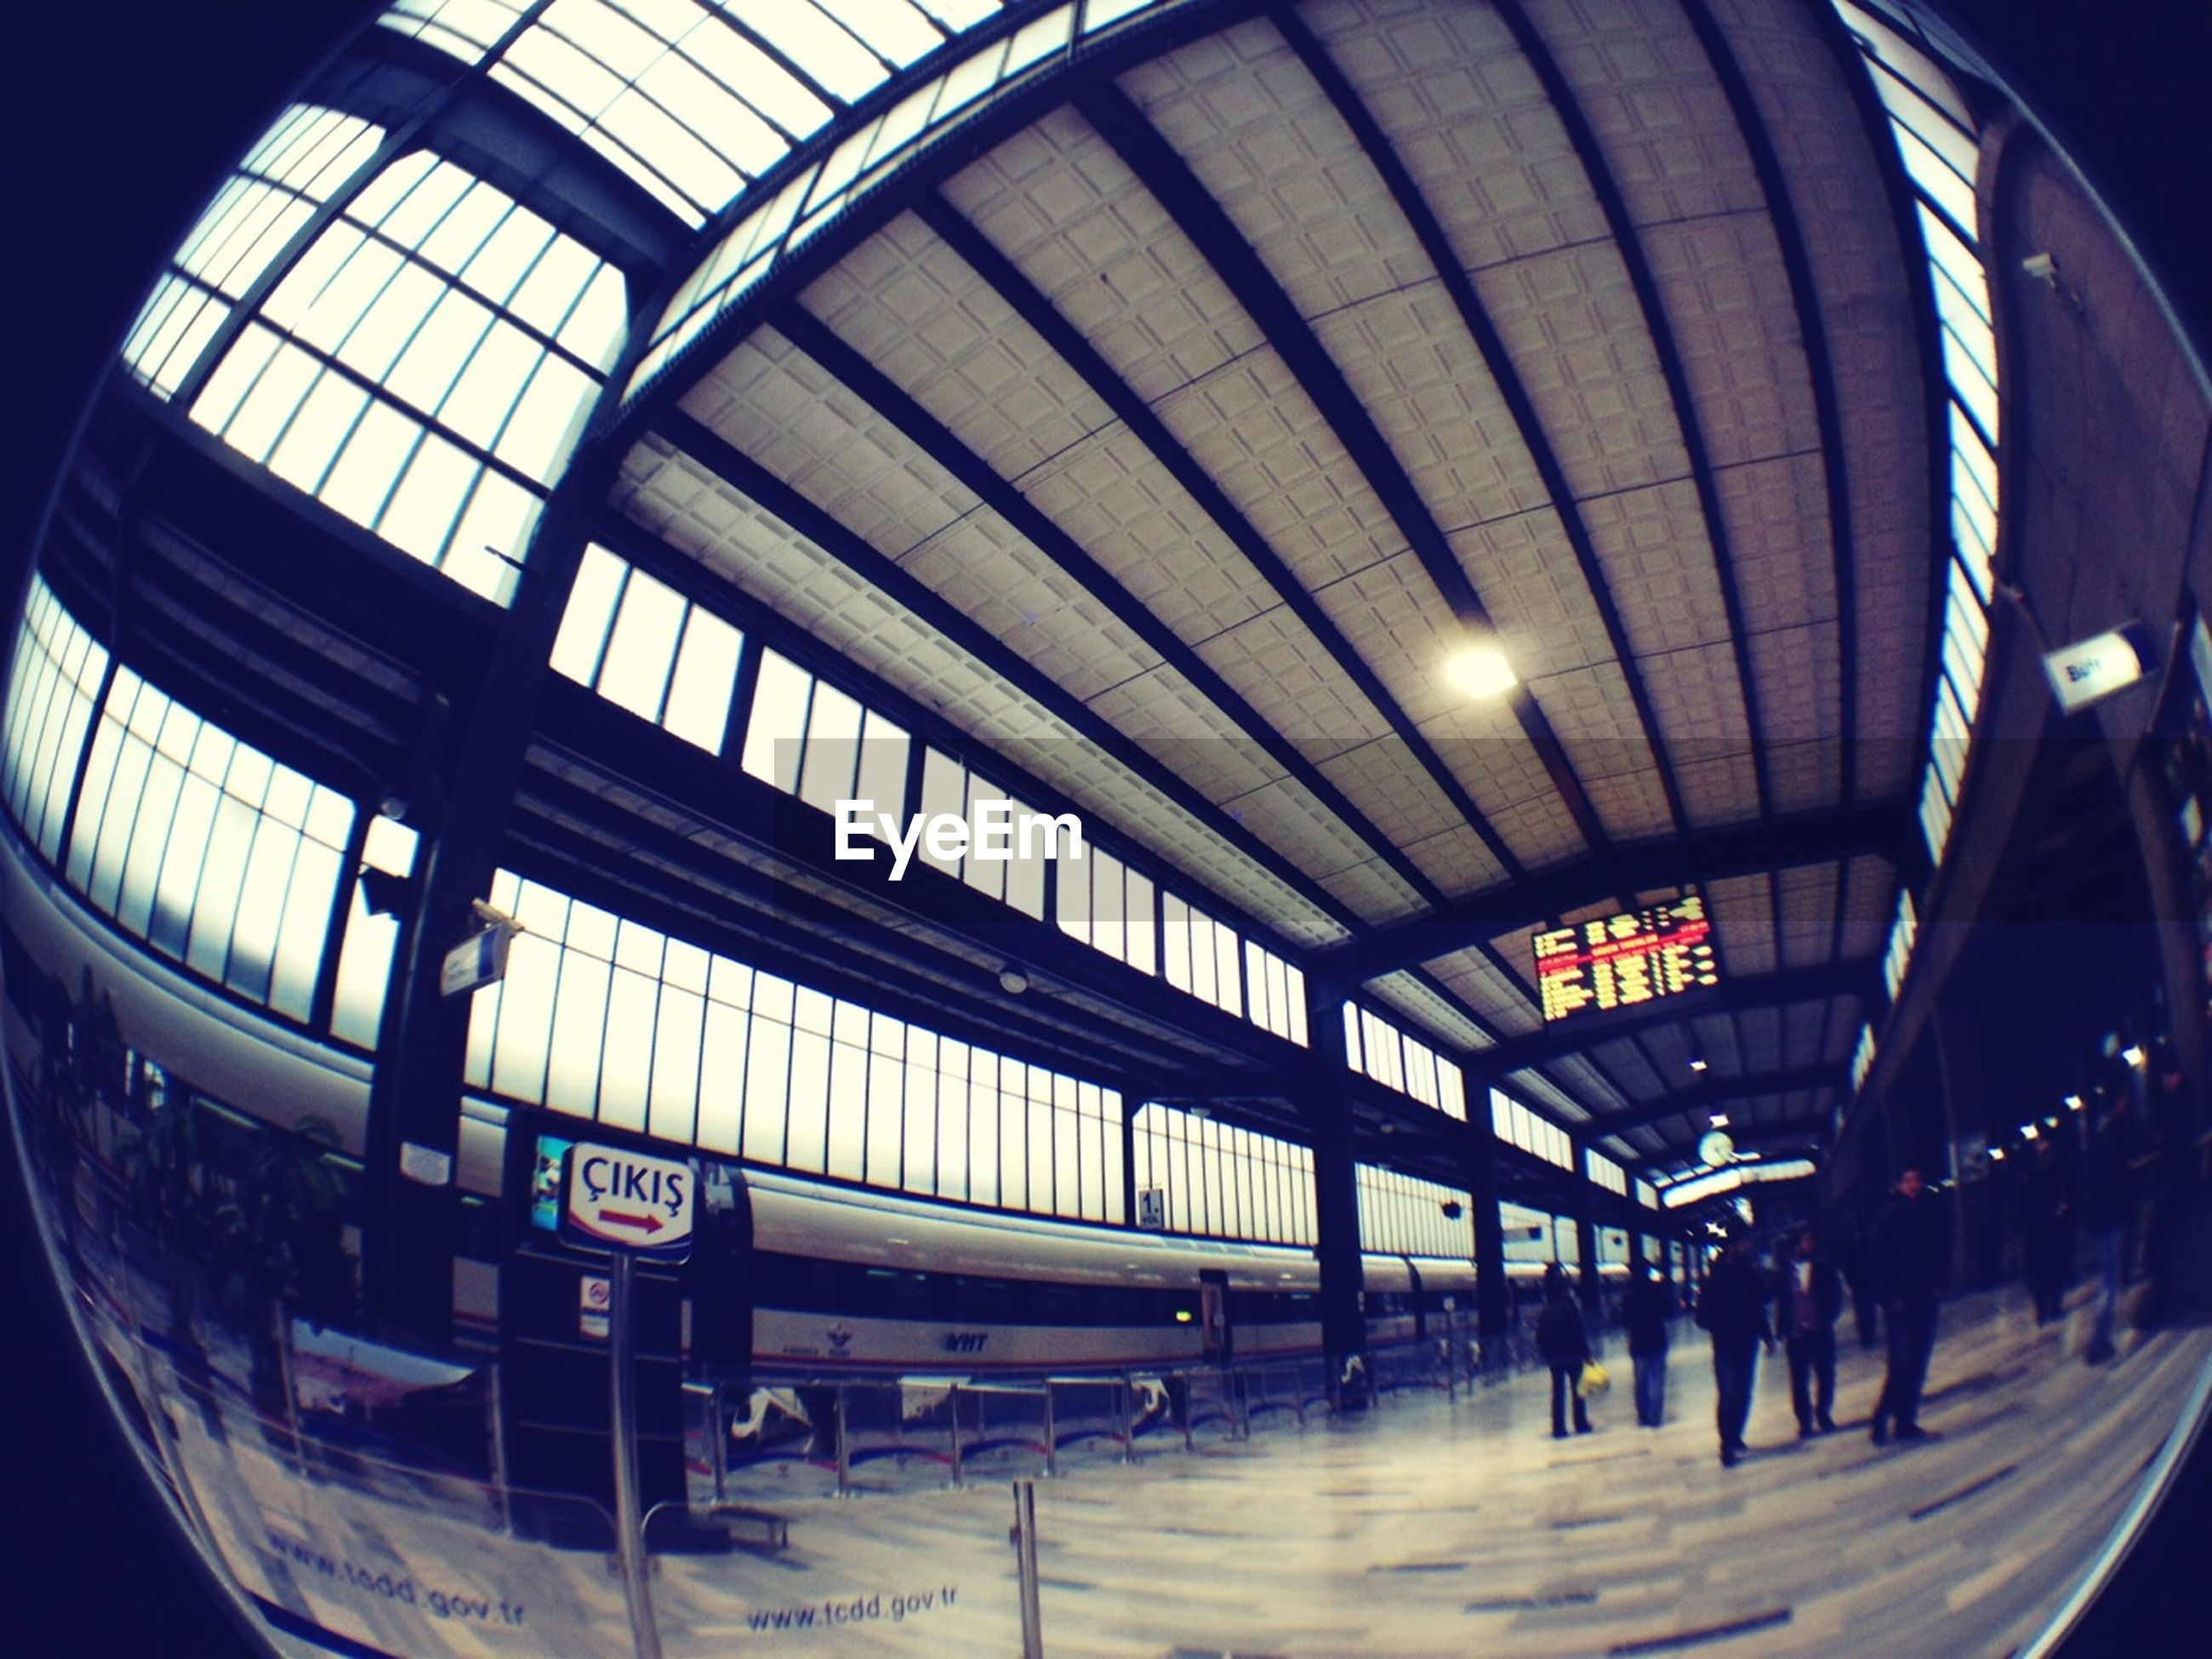 indoors, transportation, mode of transport, architecture, built structure, public transportation, illuminated, ceiling, railroad station, glass - material, travel, airport, interior, incidental people, text, train - vehicle, night, low angle view, window, modern